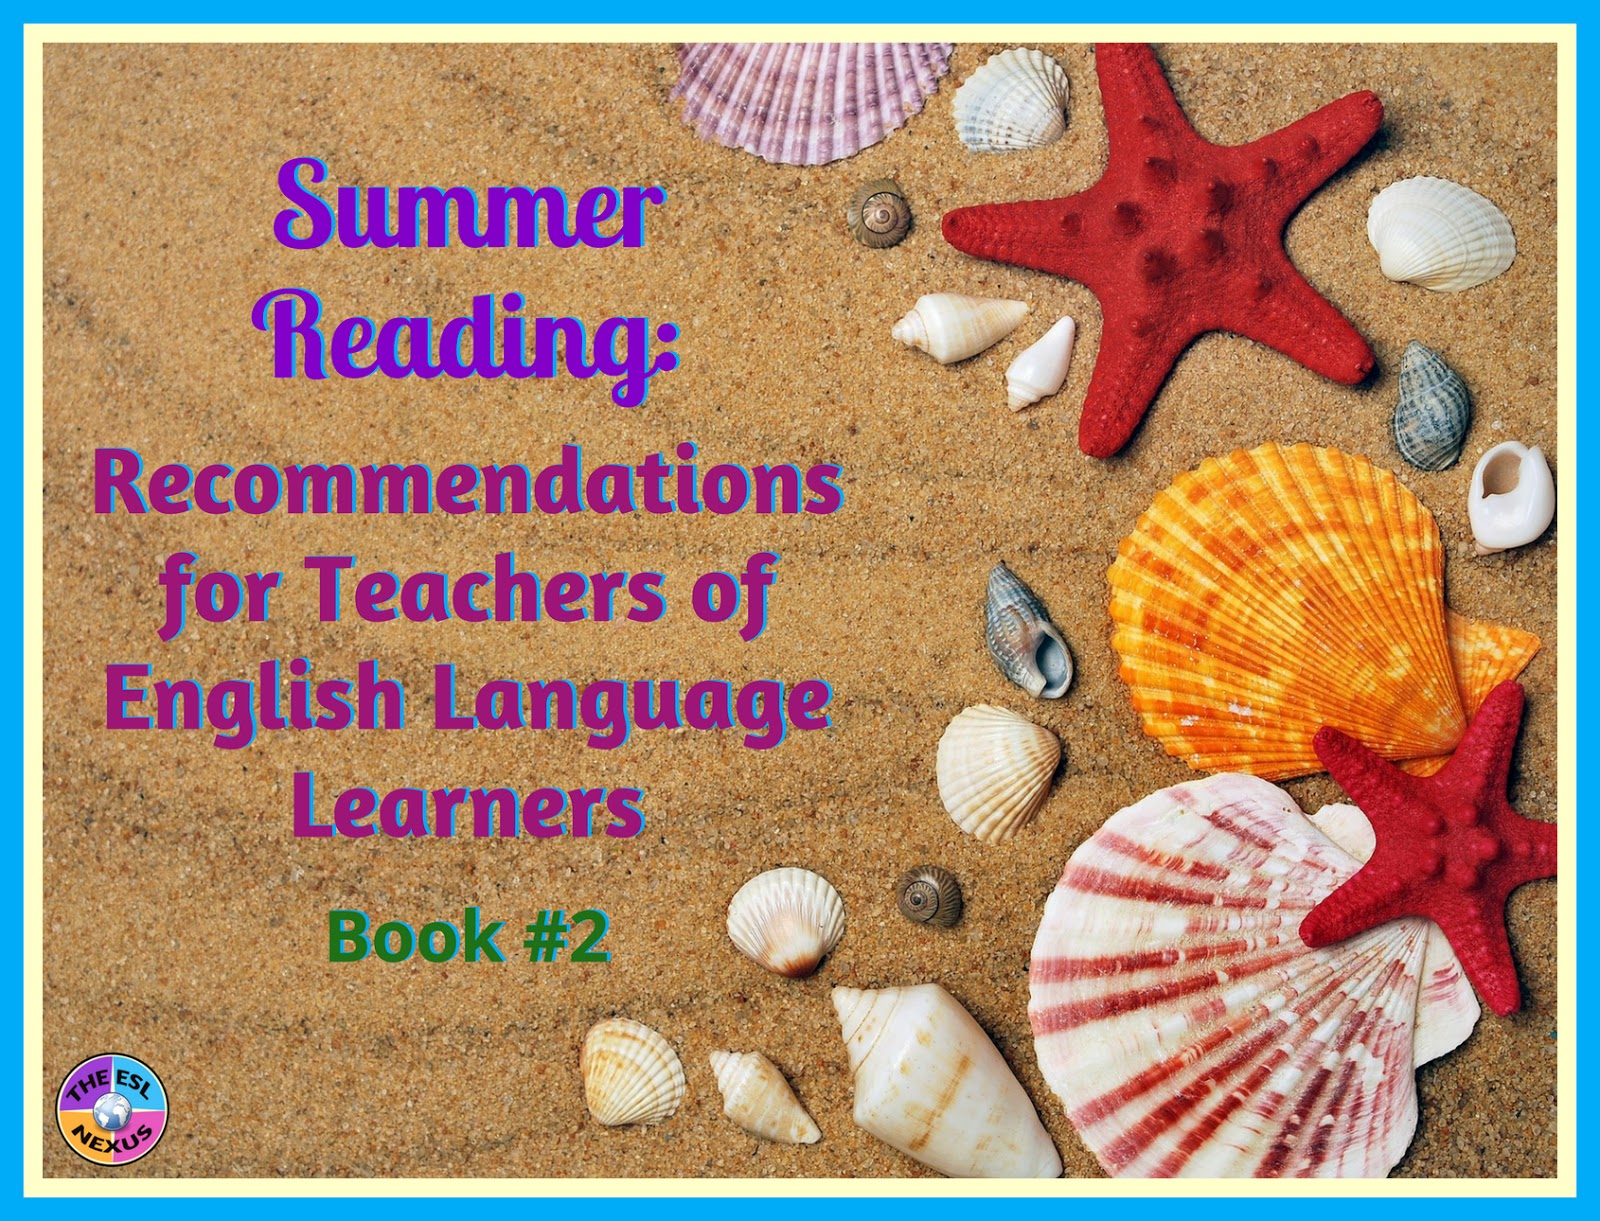 Summer reading: Book recommendations for teachers of English Language Learners, Book #2 | The ESL Nexus